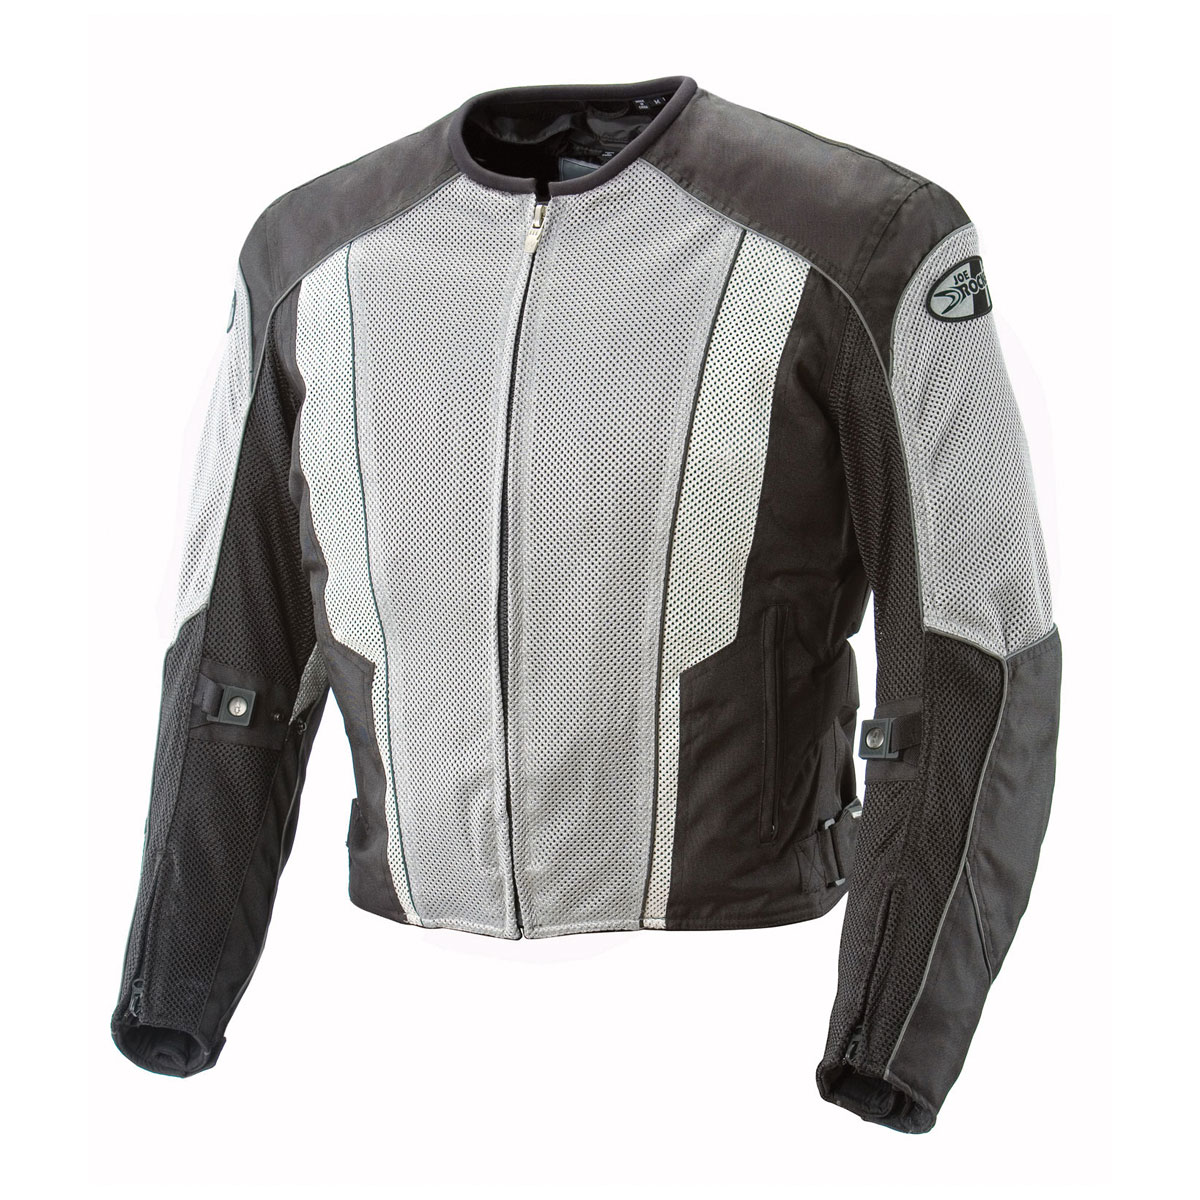 Joe Rocket Men's Phoenix 5.0 Gray/Black Mesh Jacket